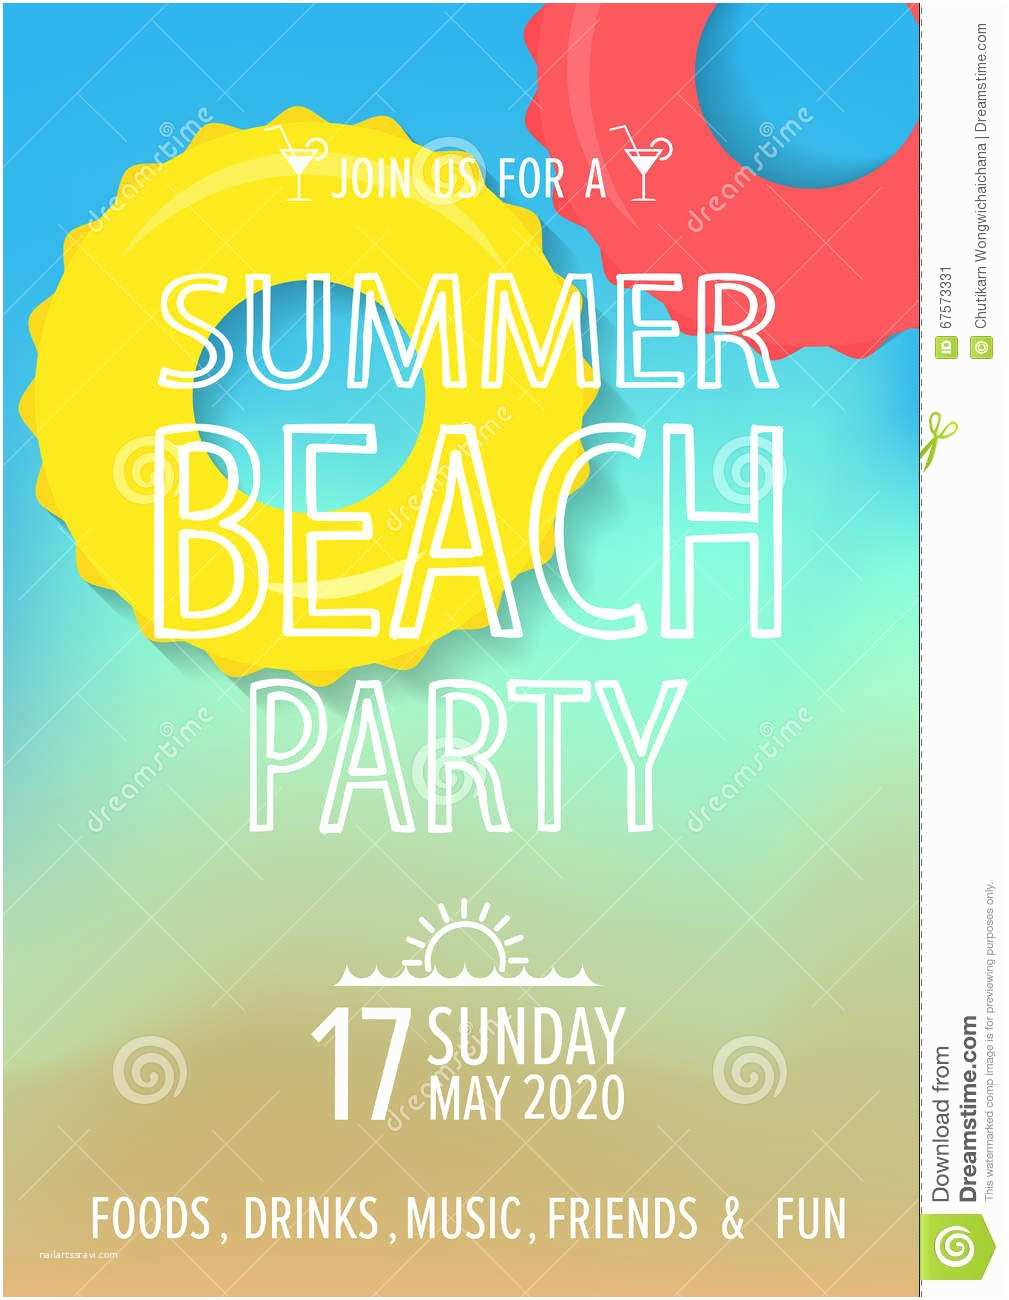 Beach Party Invitations Create Easy Beach Party Invitations Templates Designs